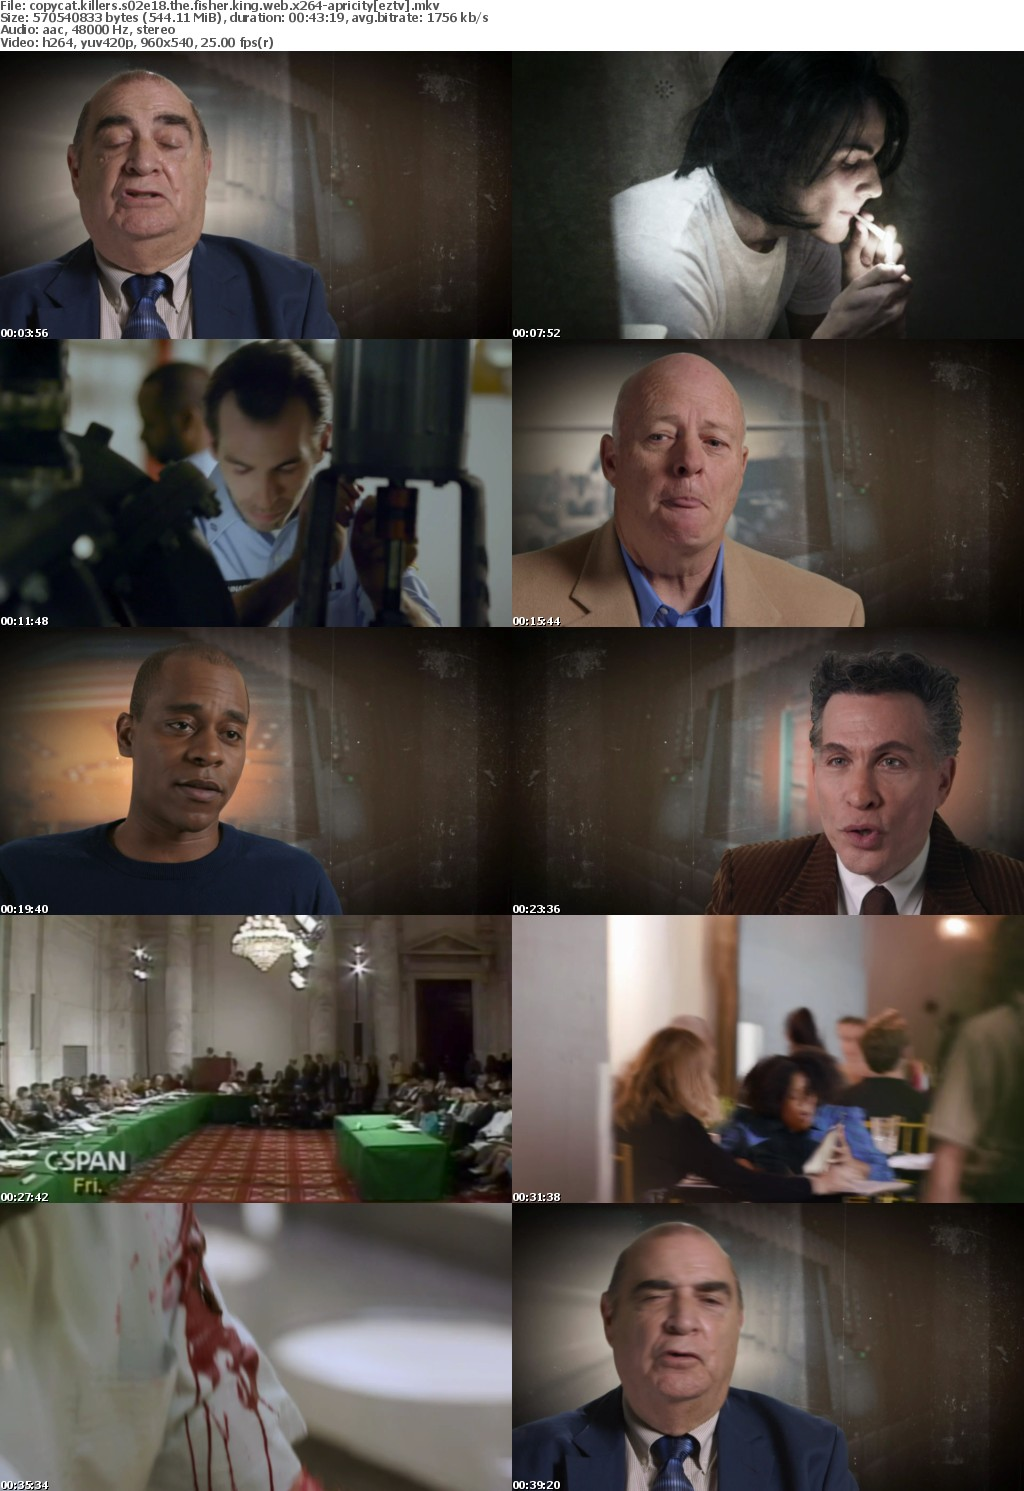 Copycat Killers S02E18 The Fisher King WEB x264-APRiCiTY